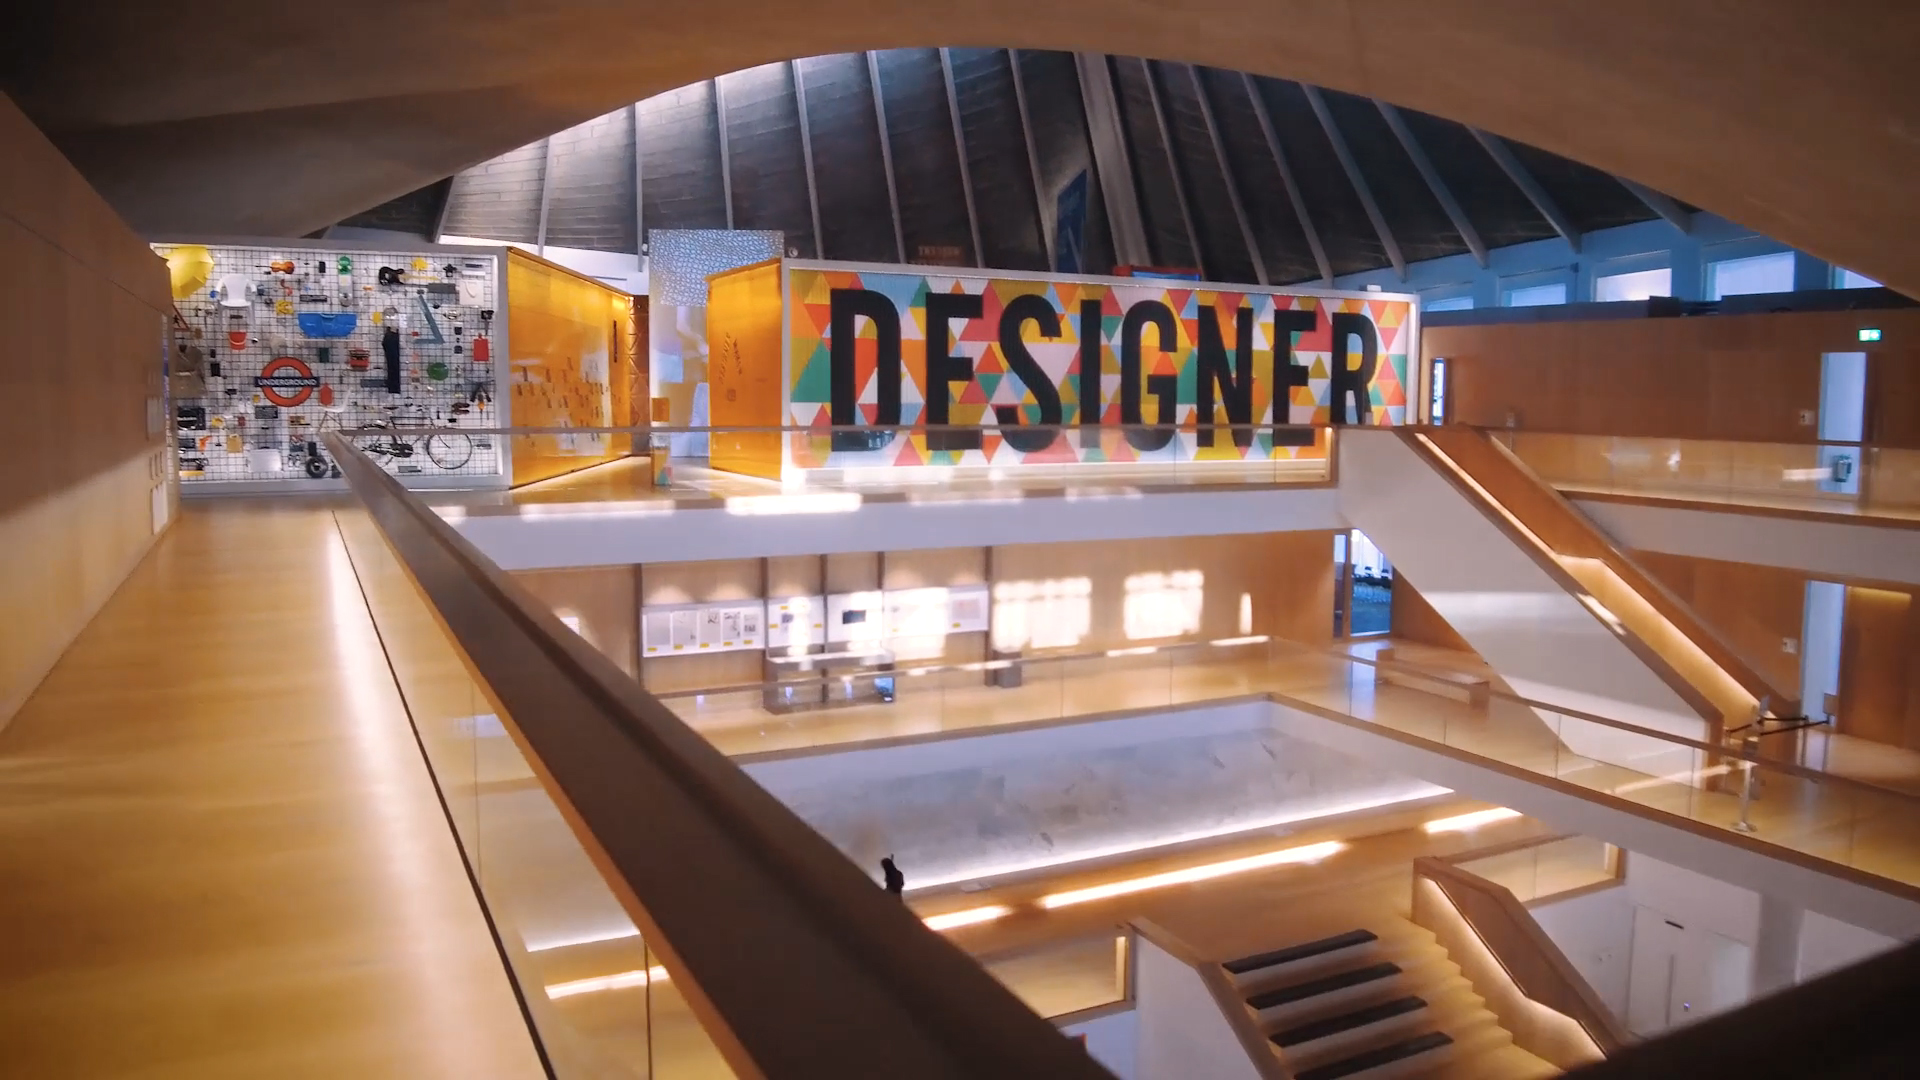 workplace design, office design, commercial interiors, workplace strategy, delivery